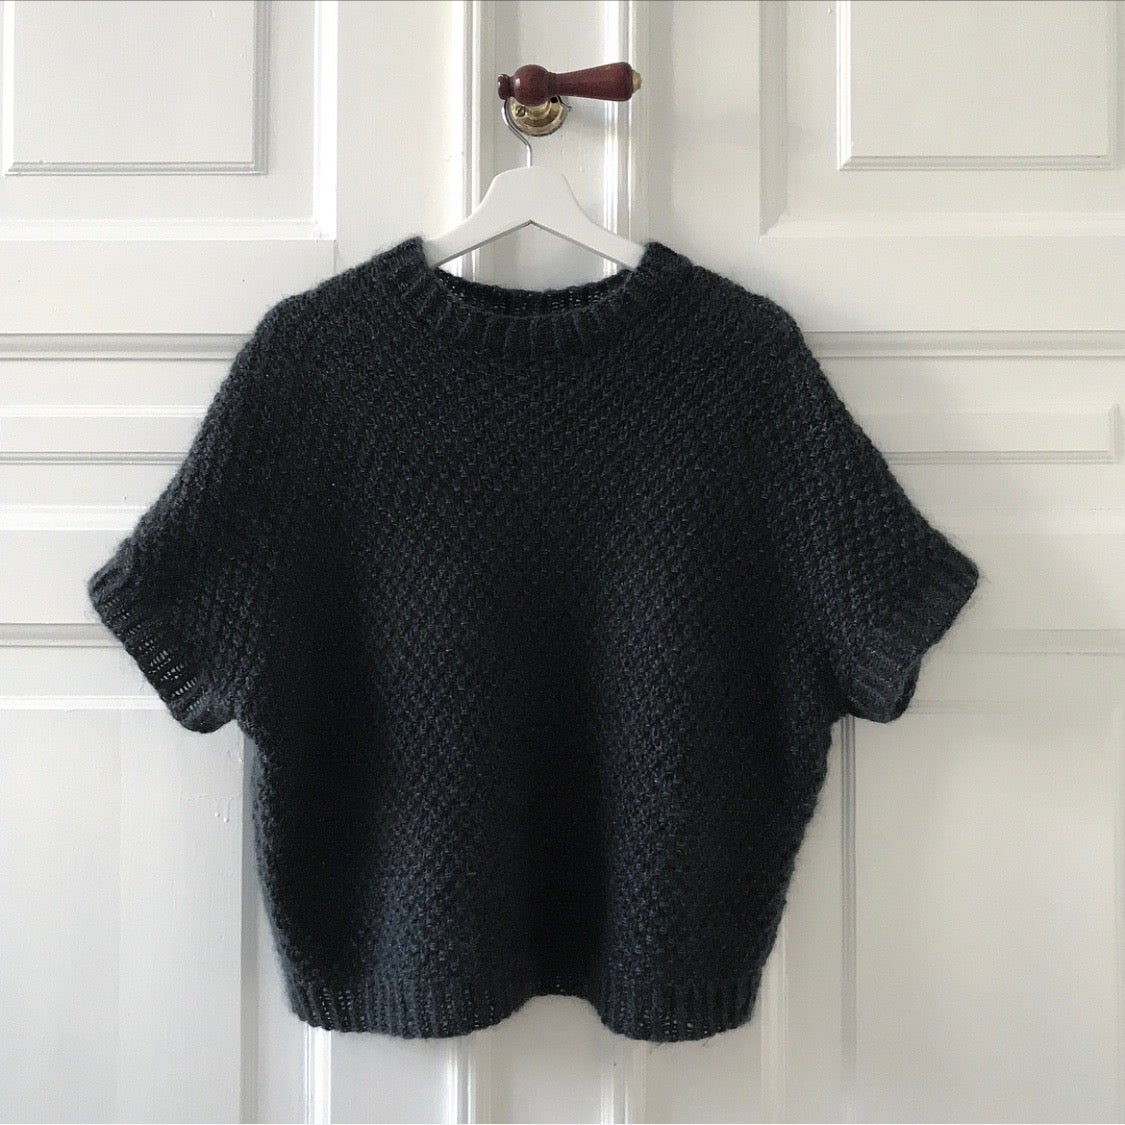 Image of Maja (Danish pattern only - find the English pattern on Ravelry)